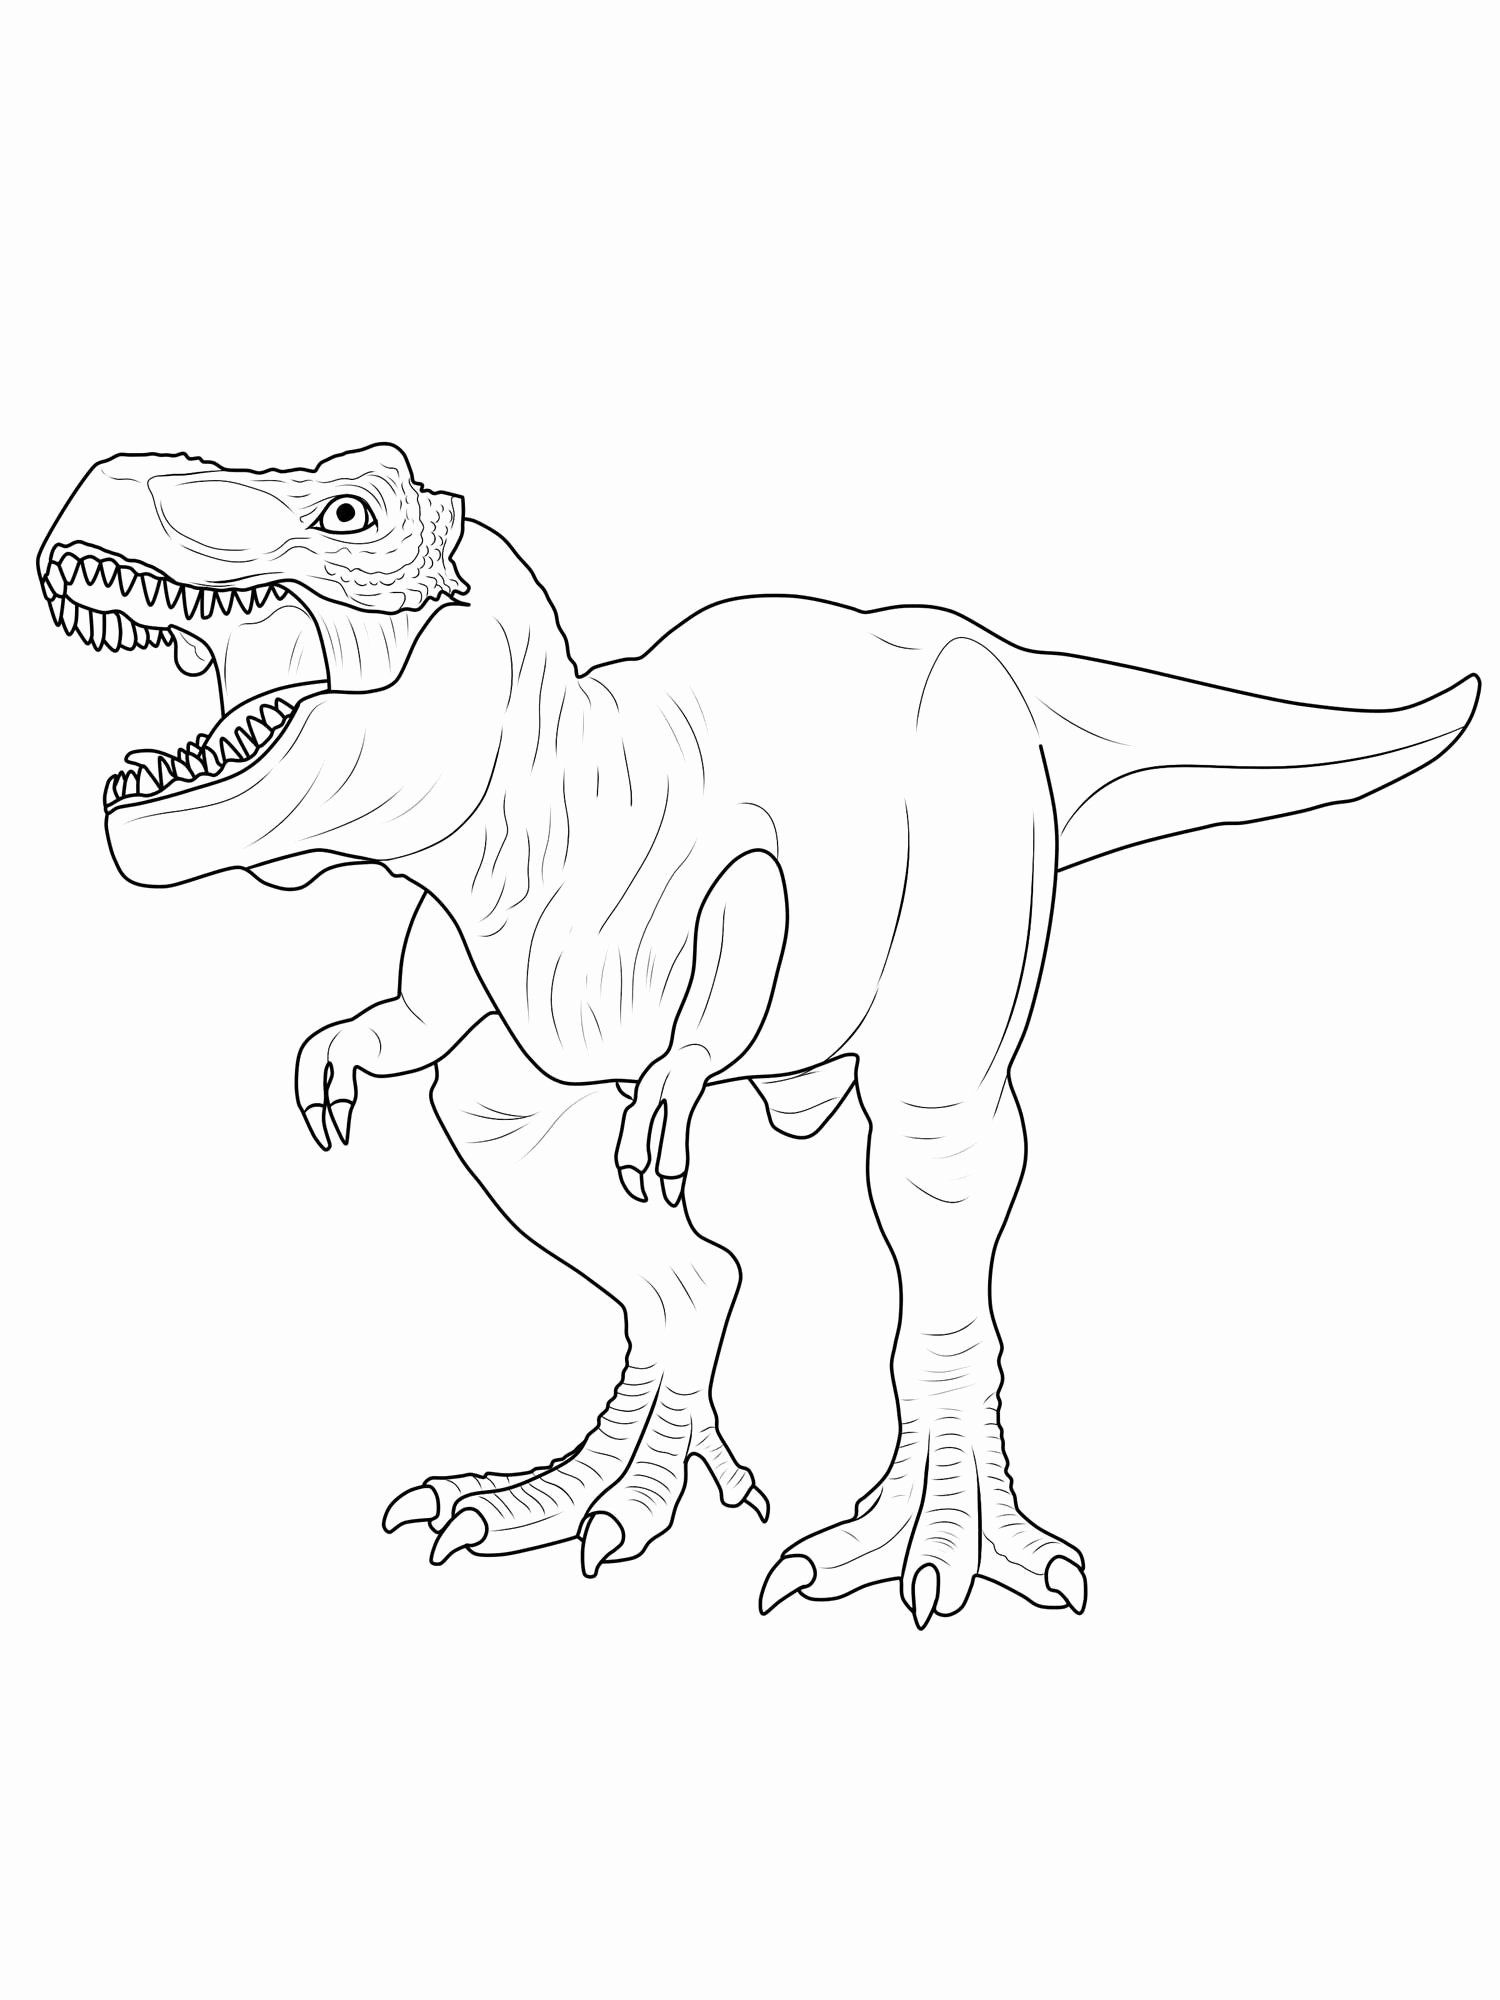 T Rex Coloring Sheets Inspirational Free T Rex Coloring Pages At Getdrawings In 2020 Dinosaur Coloring Pages Dinosaur Coloring Animal Coloring Pages